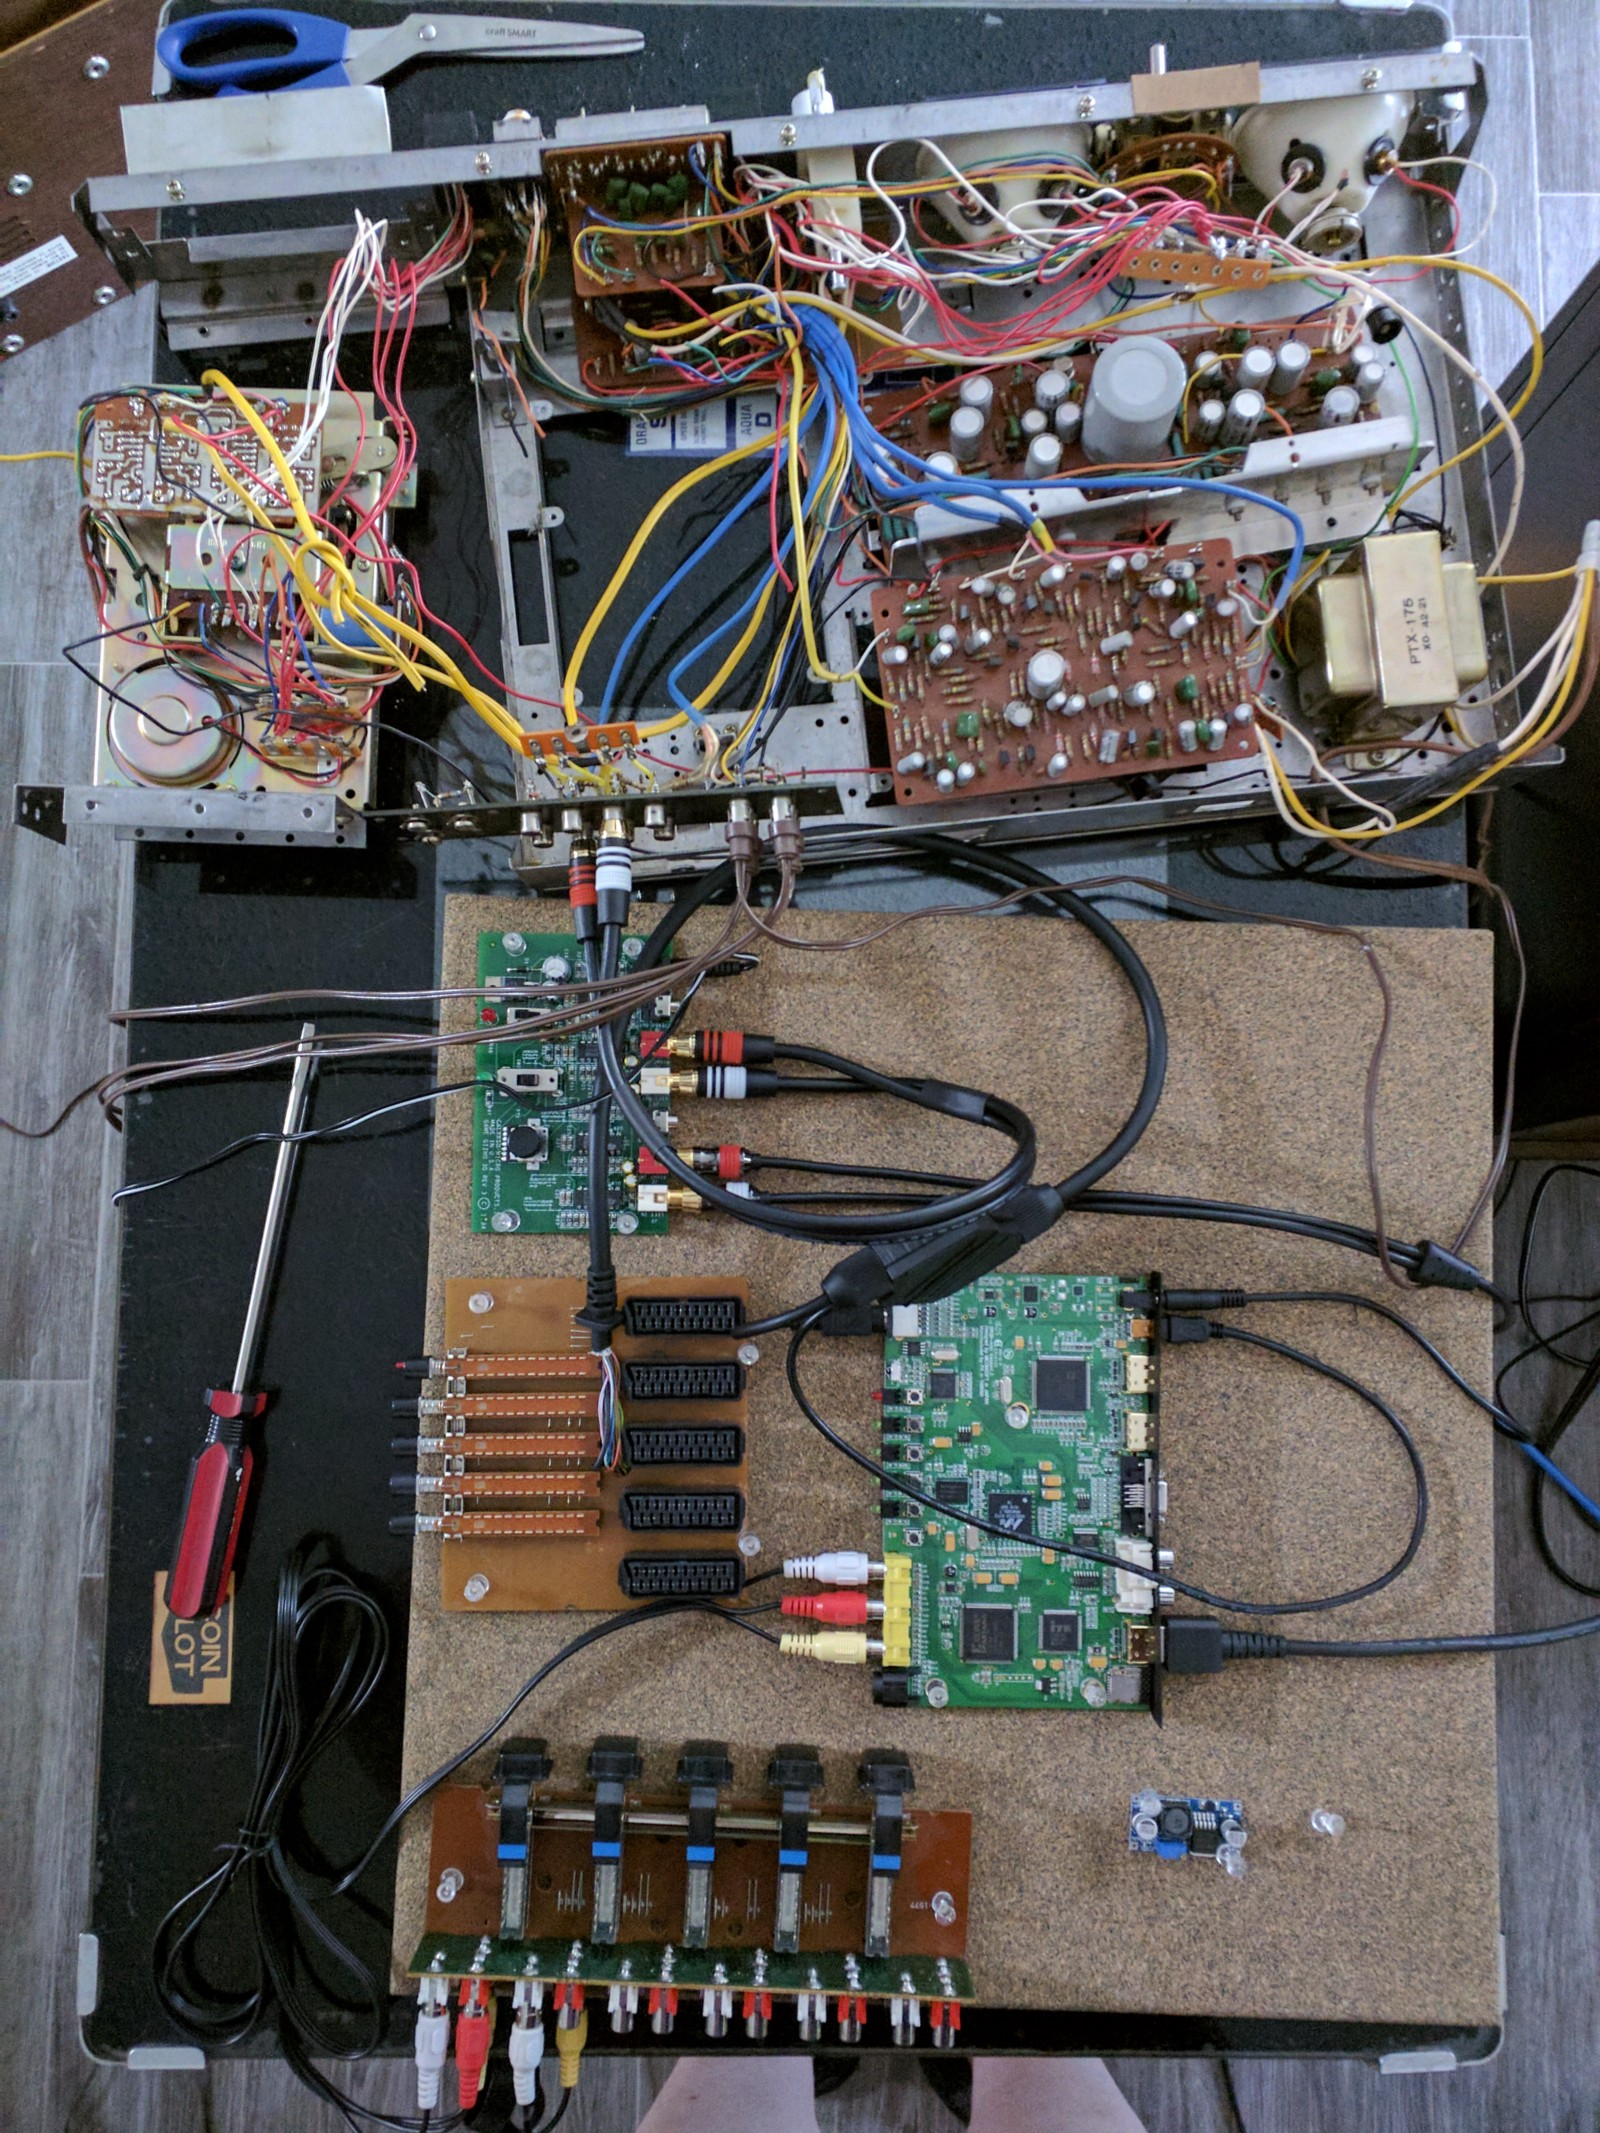 I've already partially dismantled my quadraphonic system to get it ready to  move into a new chassis along with the other components at this point.